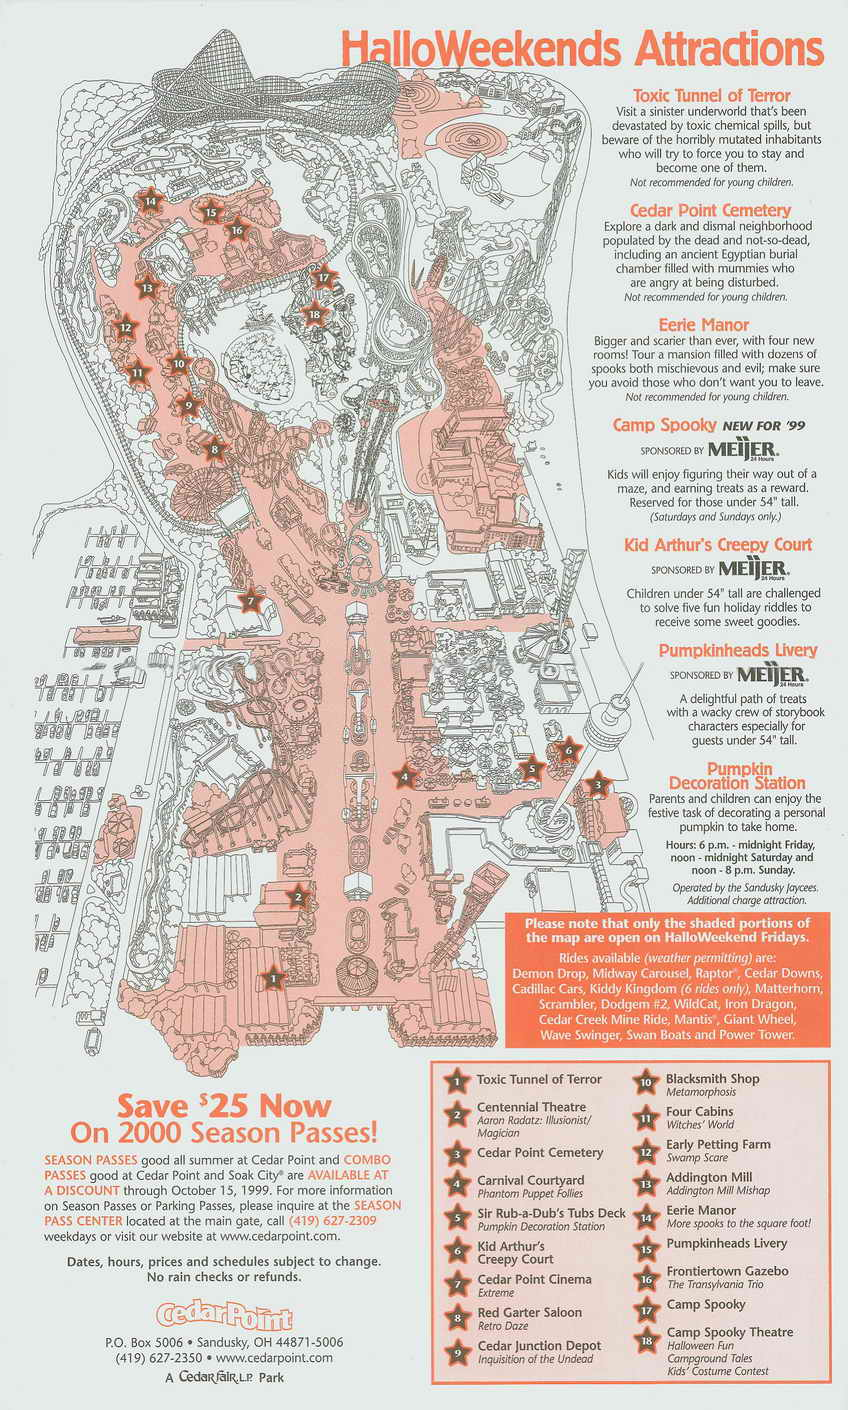 1999 Cedar Point Halloweekend Park Guide